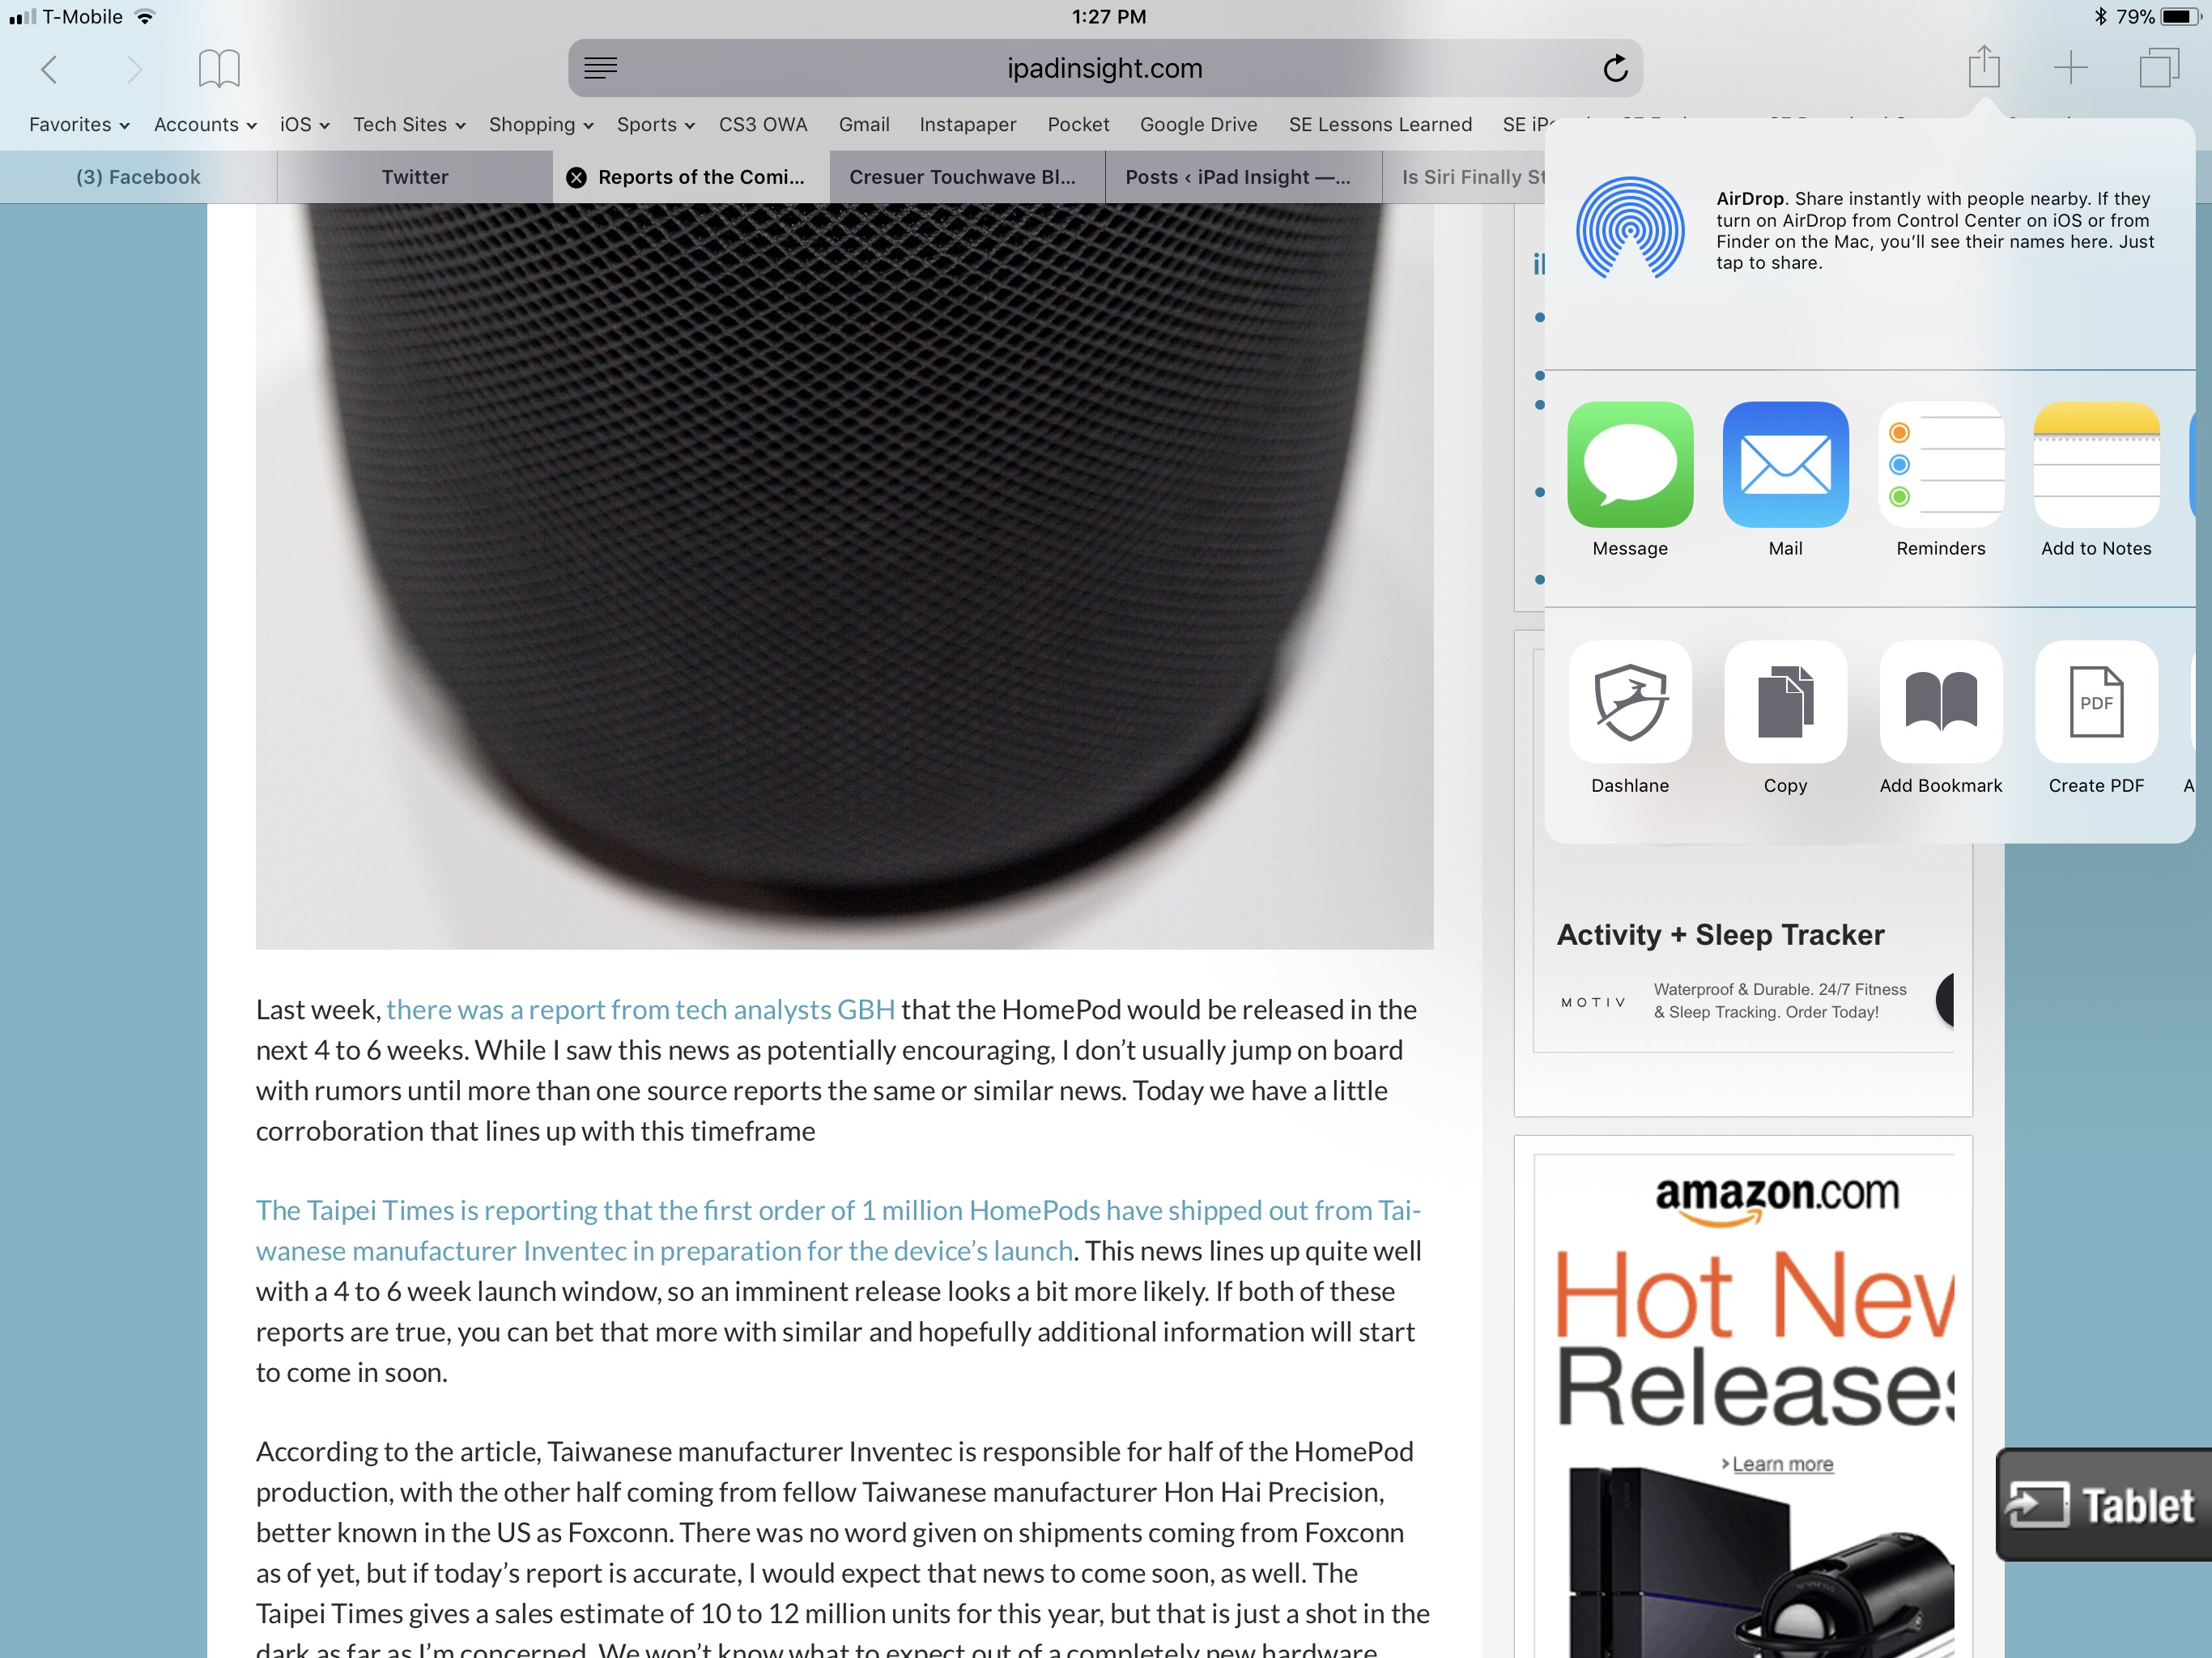 Tips and Tricks: Creating and Marking Up PDFs in iOS 11